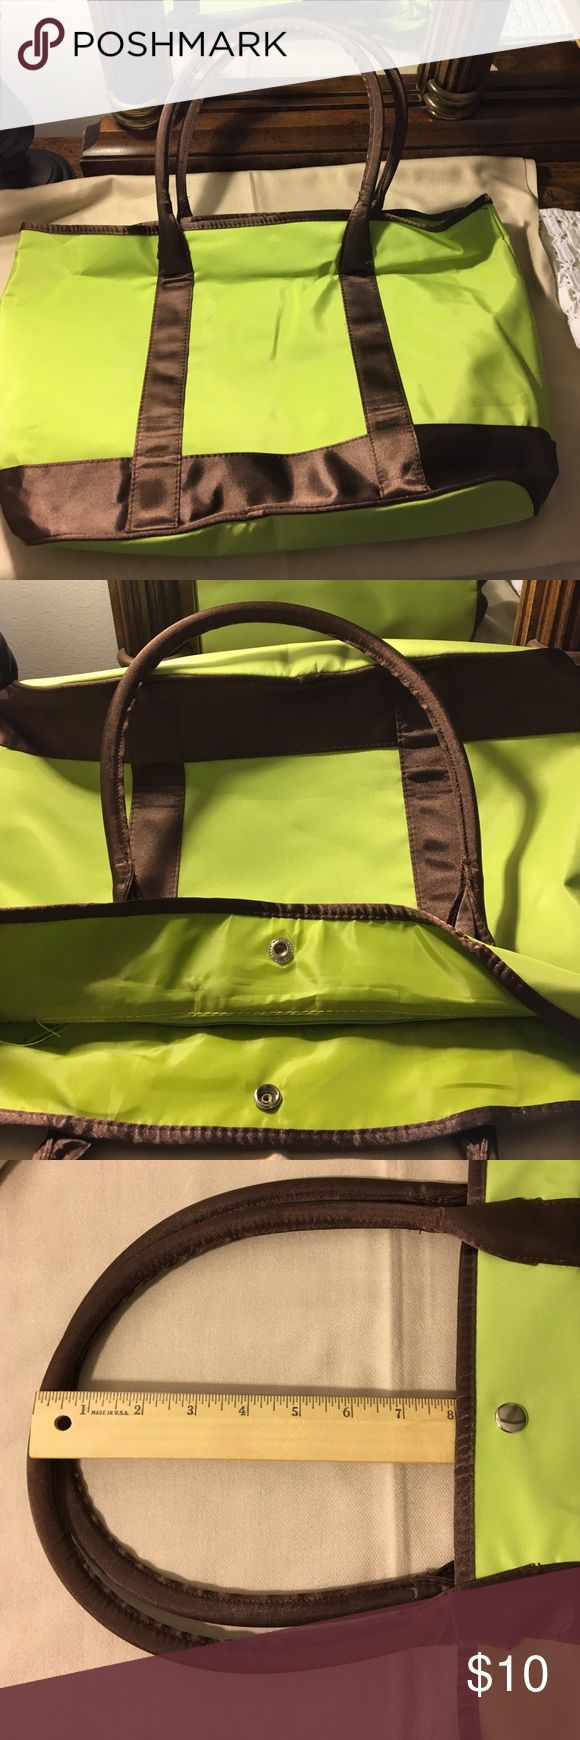 Lime green and brown tote bag Lime green and brown tote bag.  Has a zipper pouch and two pockets.  The last picture shows a folder a three ring binder, folders and notepad, this is not included.  This is to show how large the bag is. Bags Totes